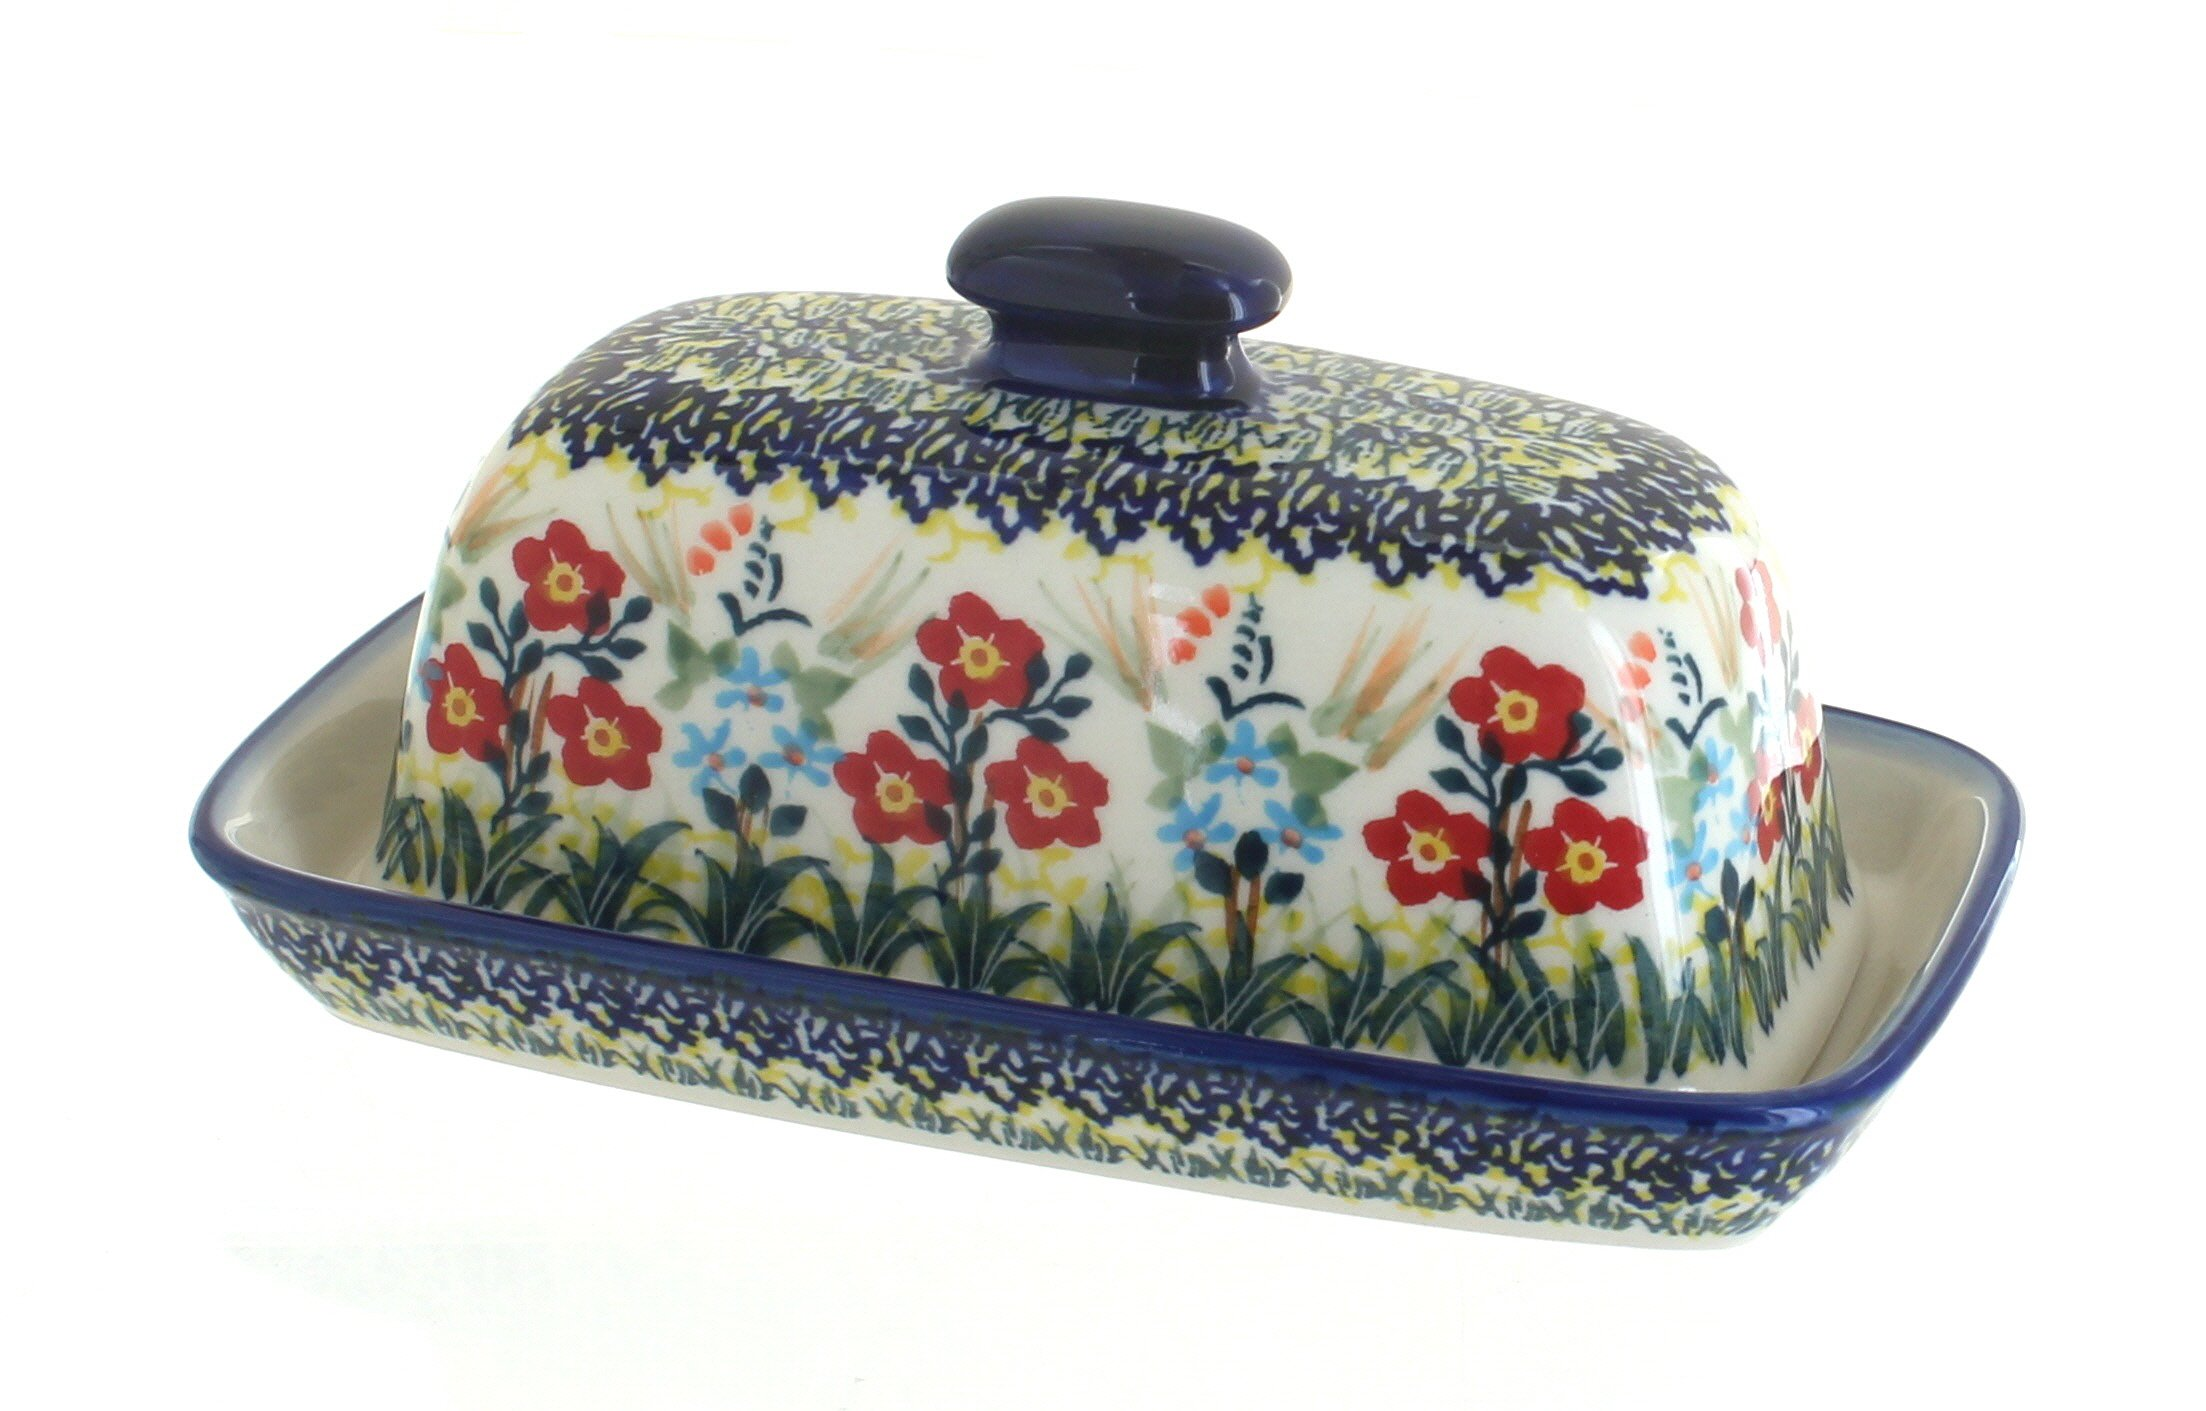 Blue Rose Polish Pottery Garden Field Butter Dish by Manufaktura (Image #1)